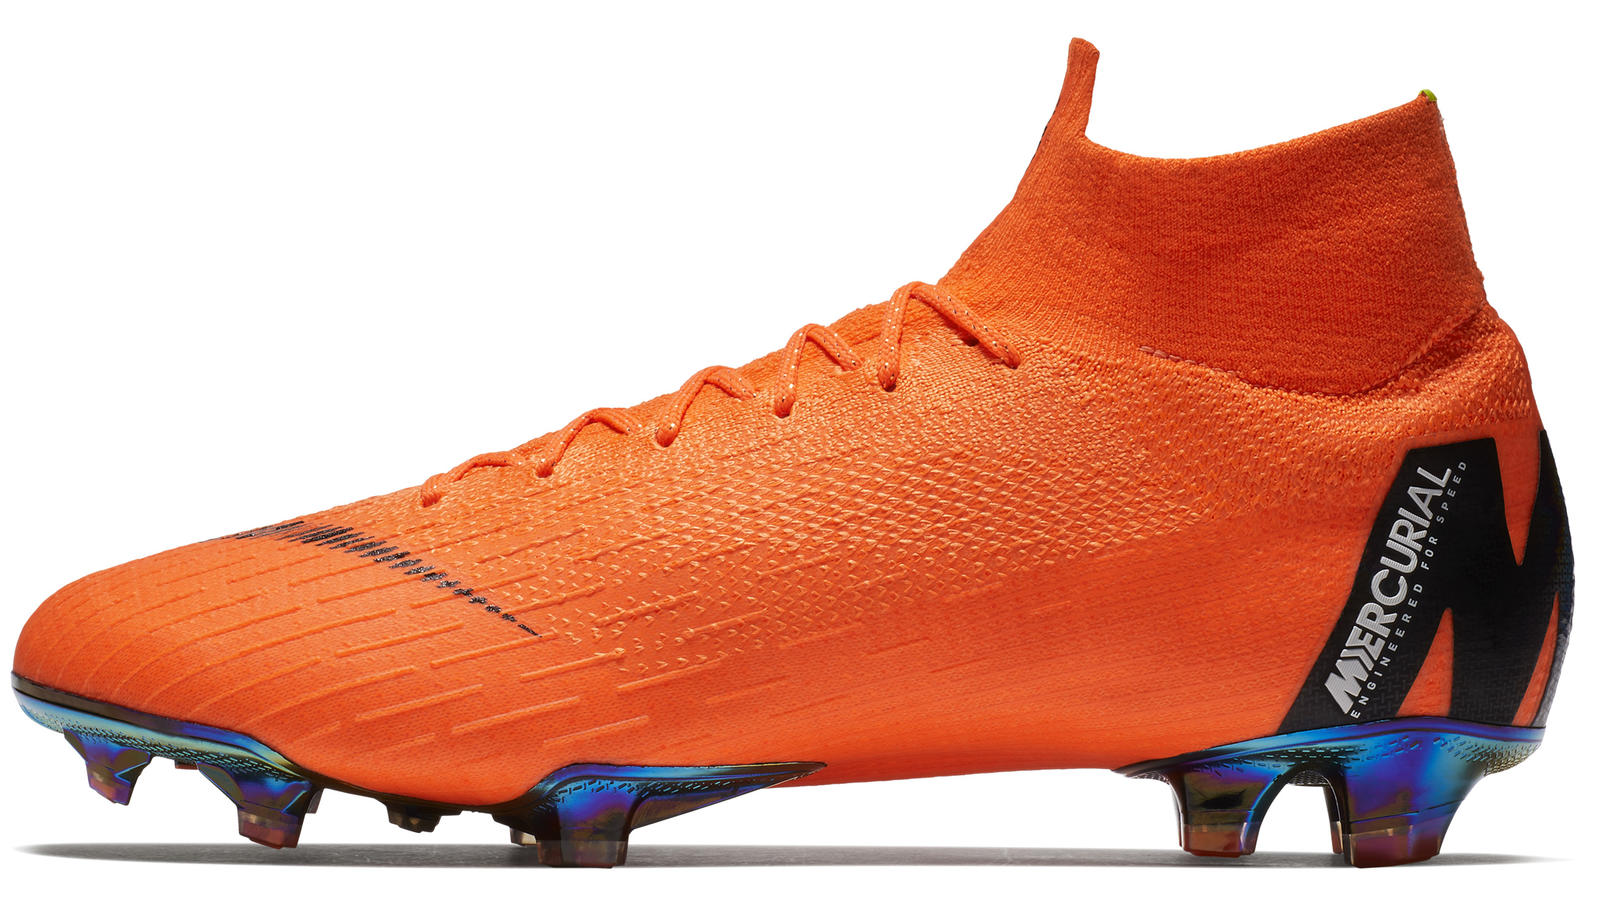 new arrival cd9bf 1914d Introducing the Mercurial Superfly and Vapor 360: Fast By ...